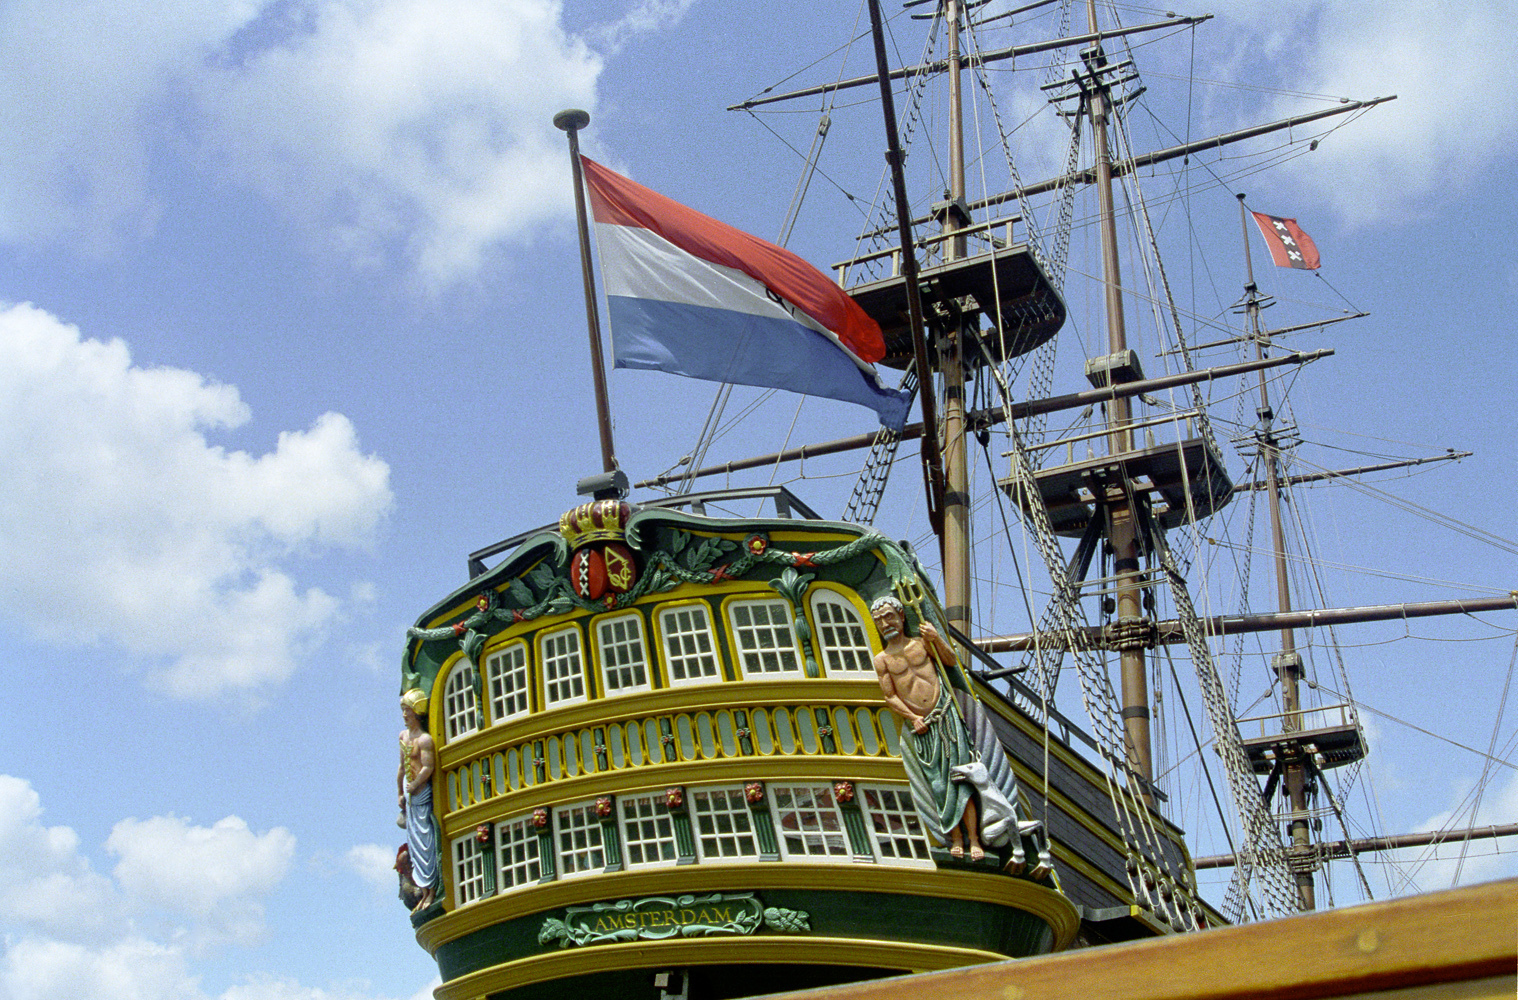 Amsterdam sail ship watercraft HD Wallpaper